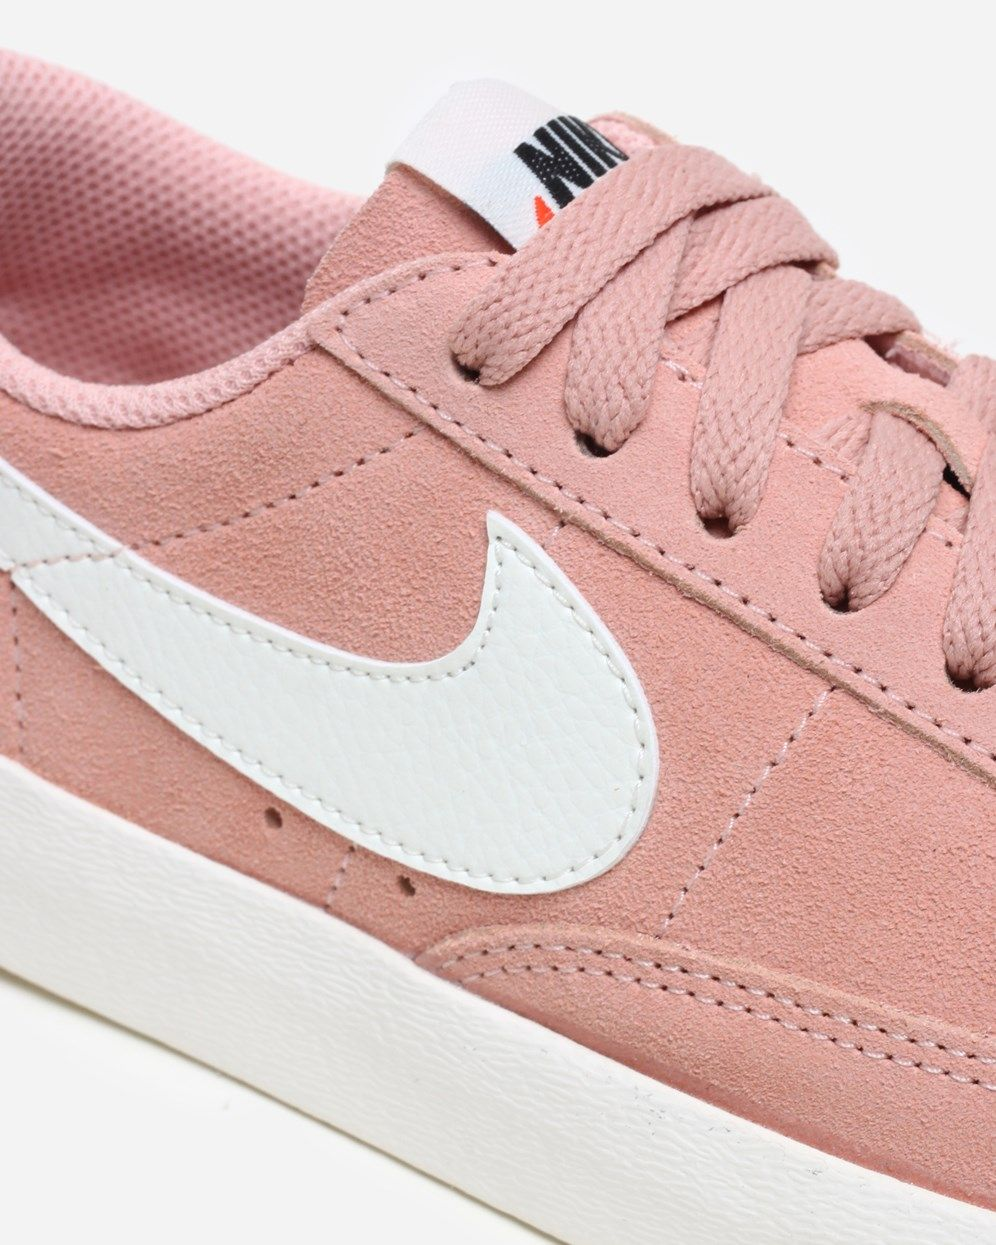 separation shoes 152dc 124b0 Nike Sportswear Blazer Low SD AA3962 605   Coral Stardust Sail   Footwear -  Naked